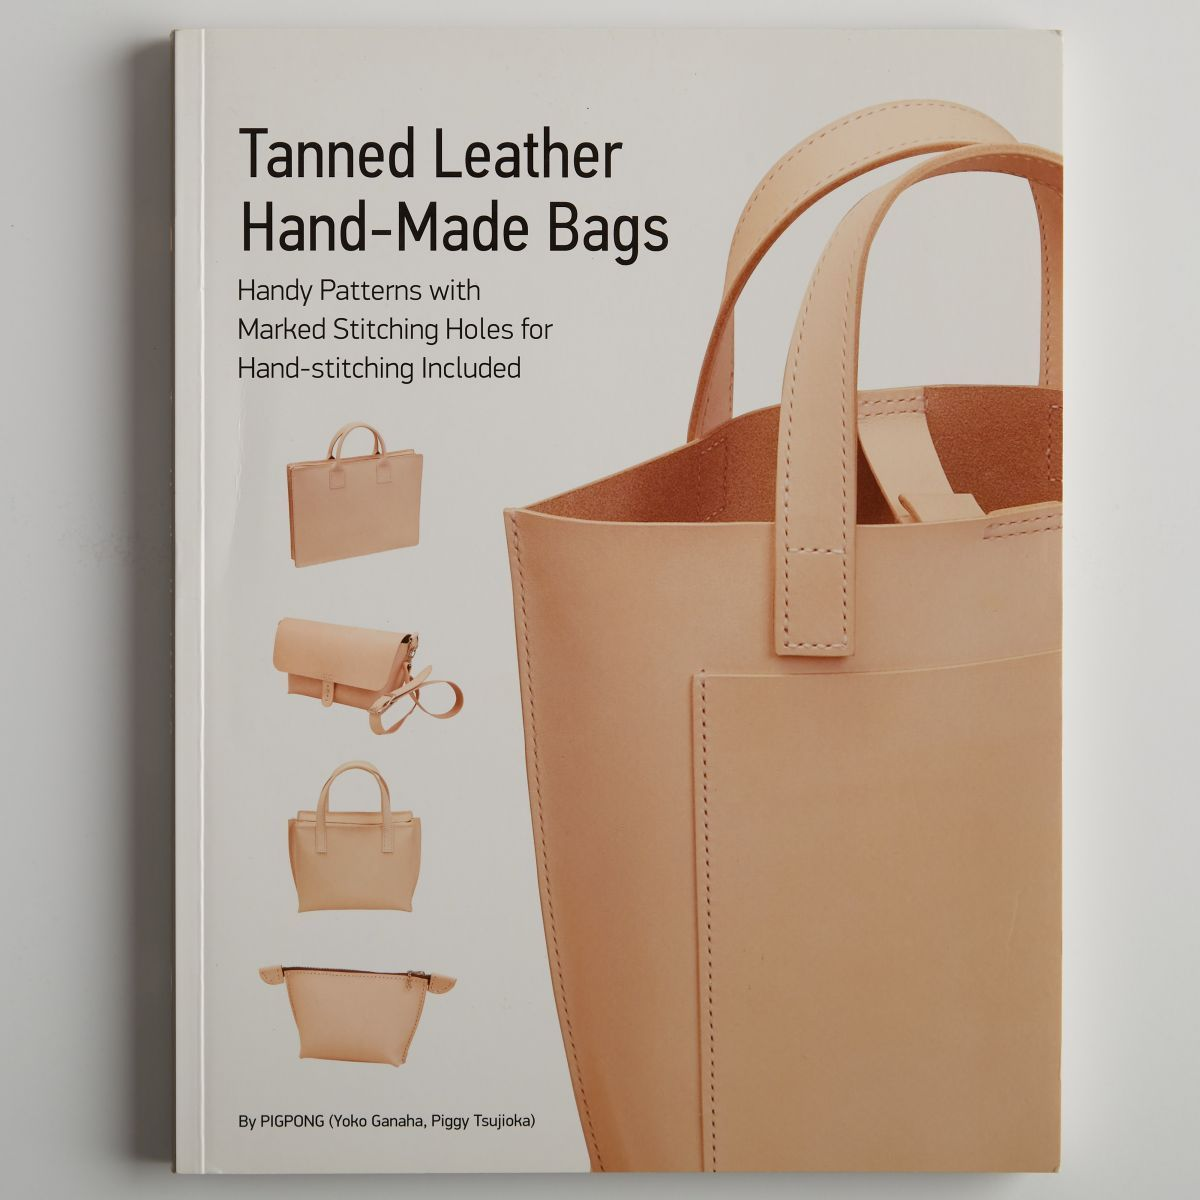 Tanned Leather Handmade Bags